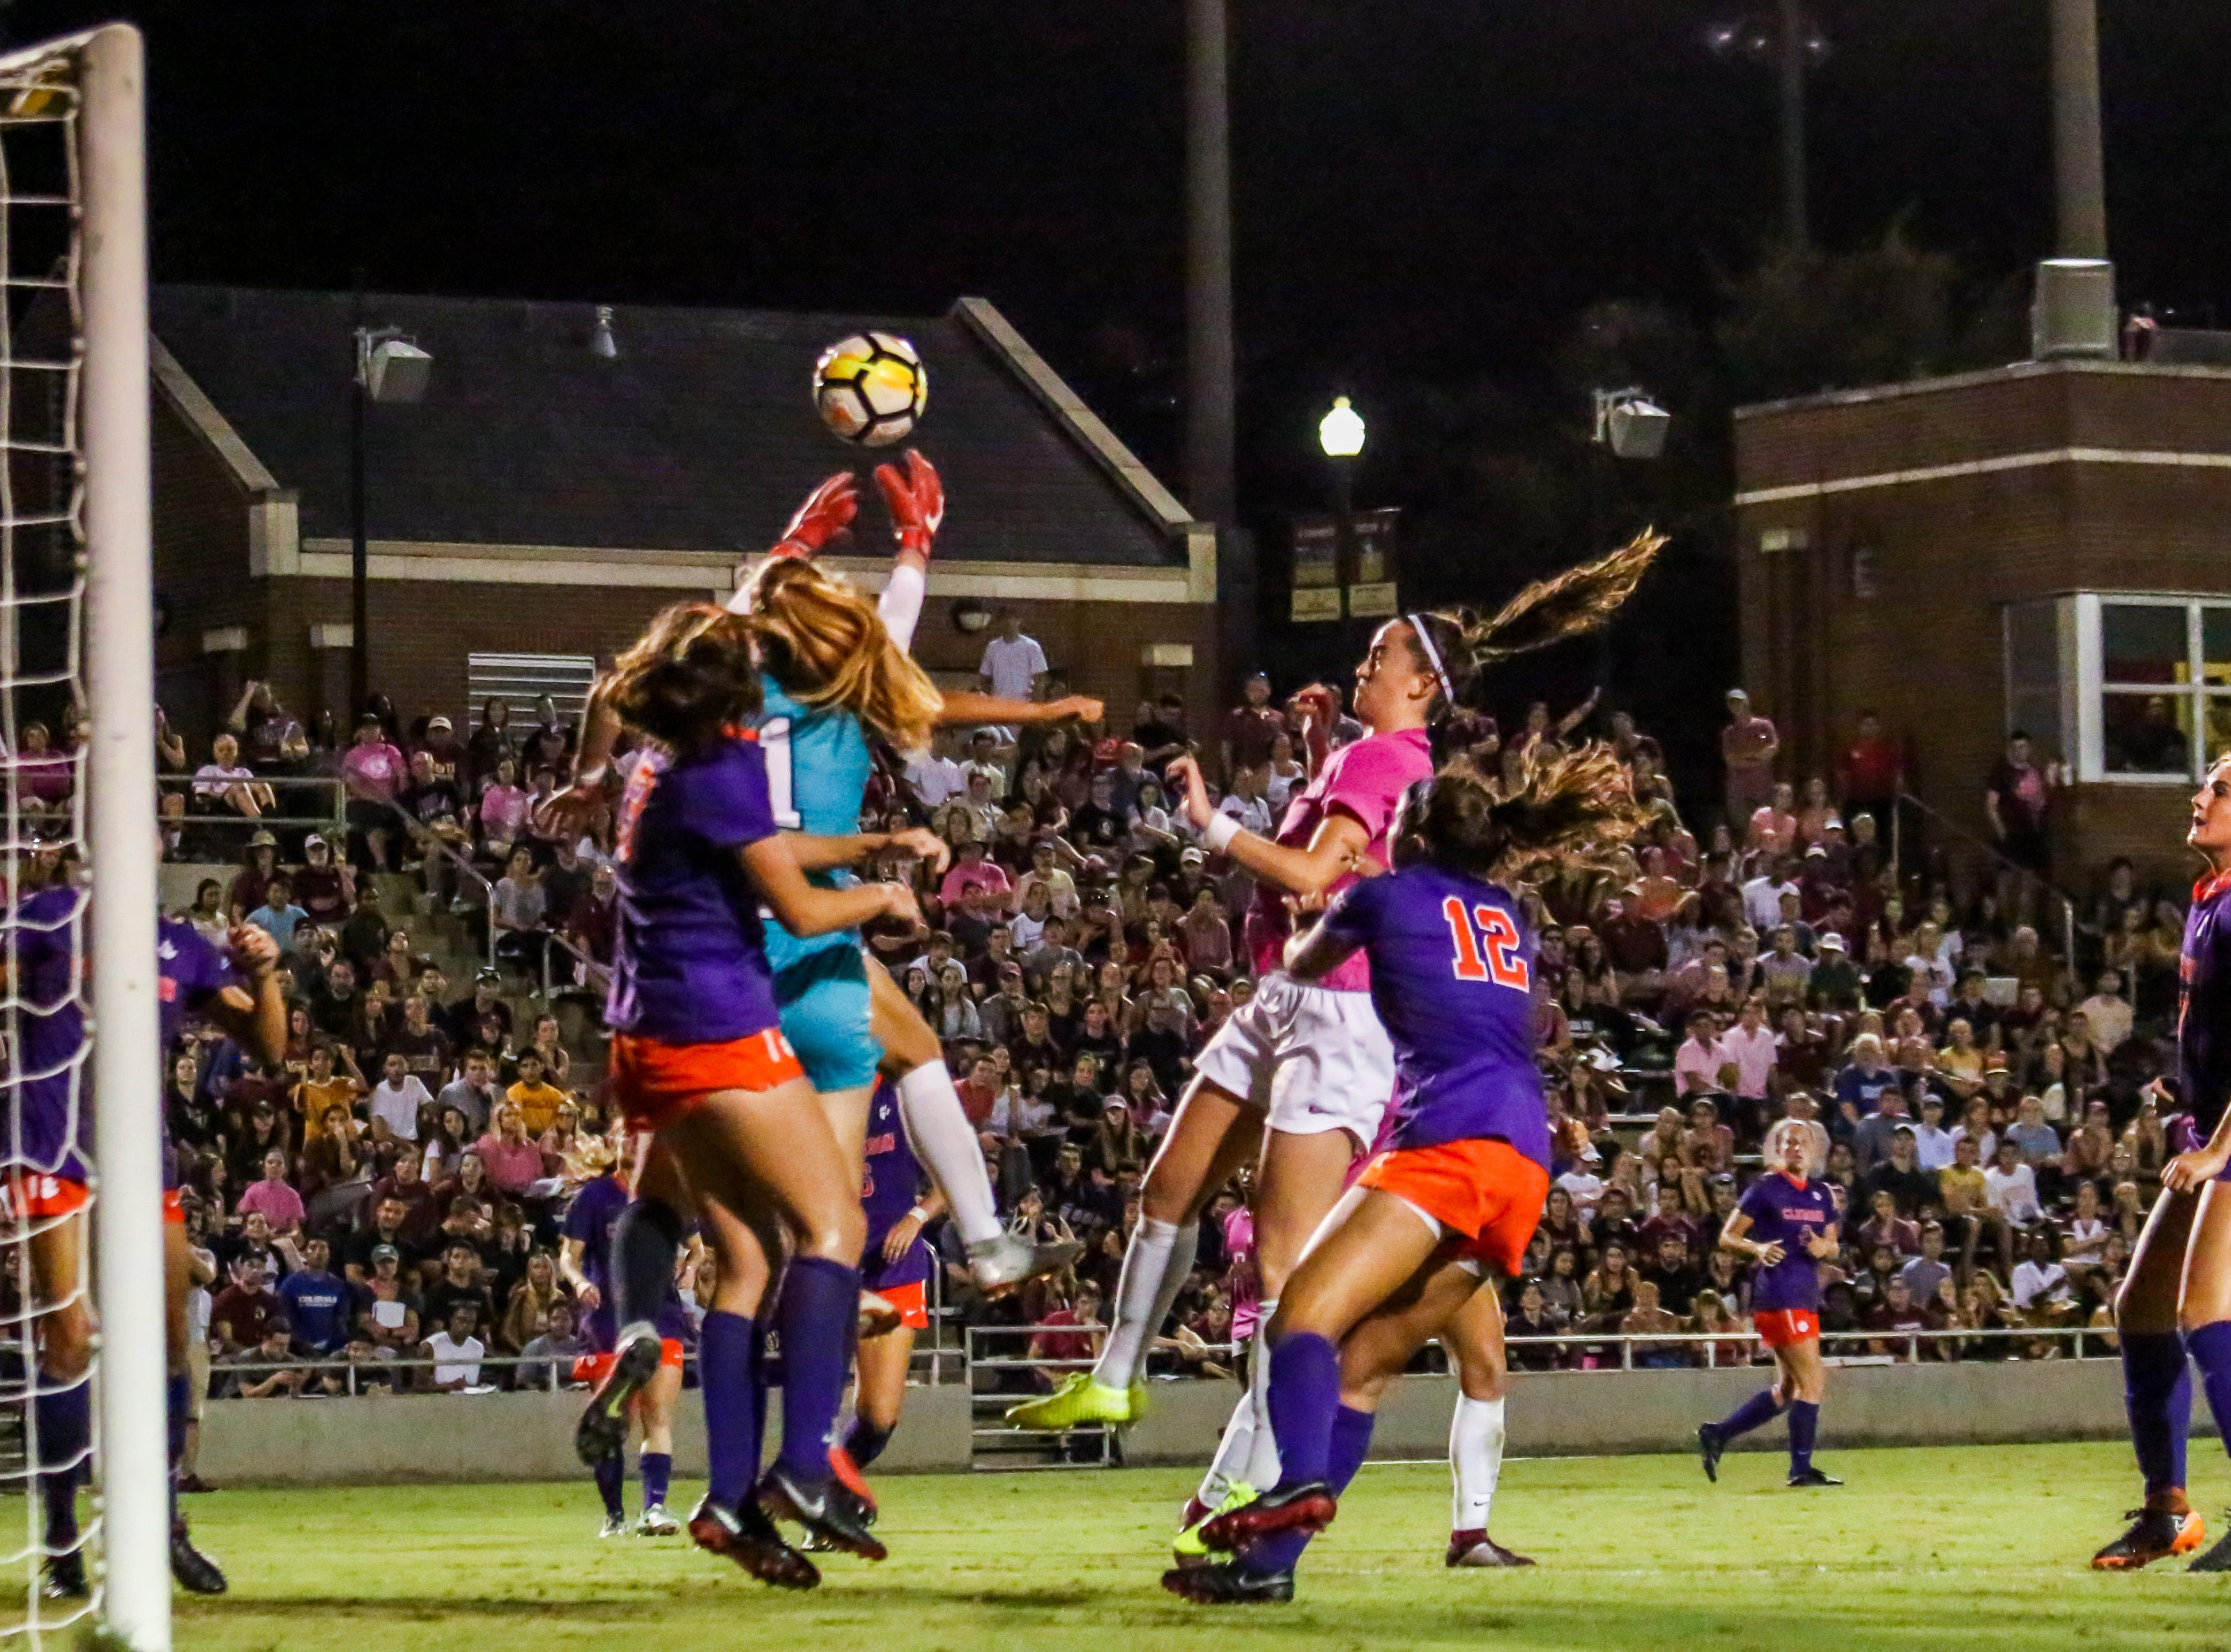 On numerous occasions, the FSU Women's Soccer team were inches away from scoring but couldn't convert their chances on Thursday, October 4th at the Seminole Soccer Complex.